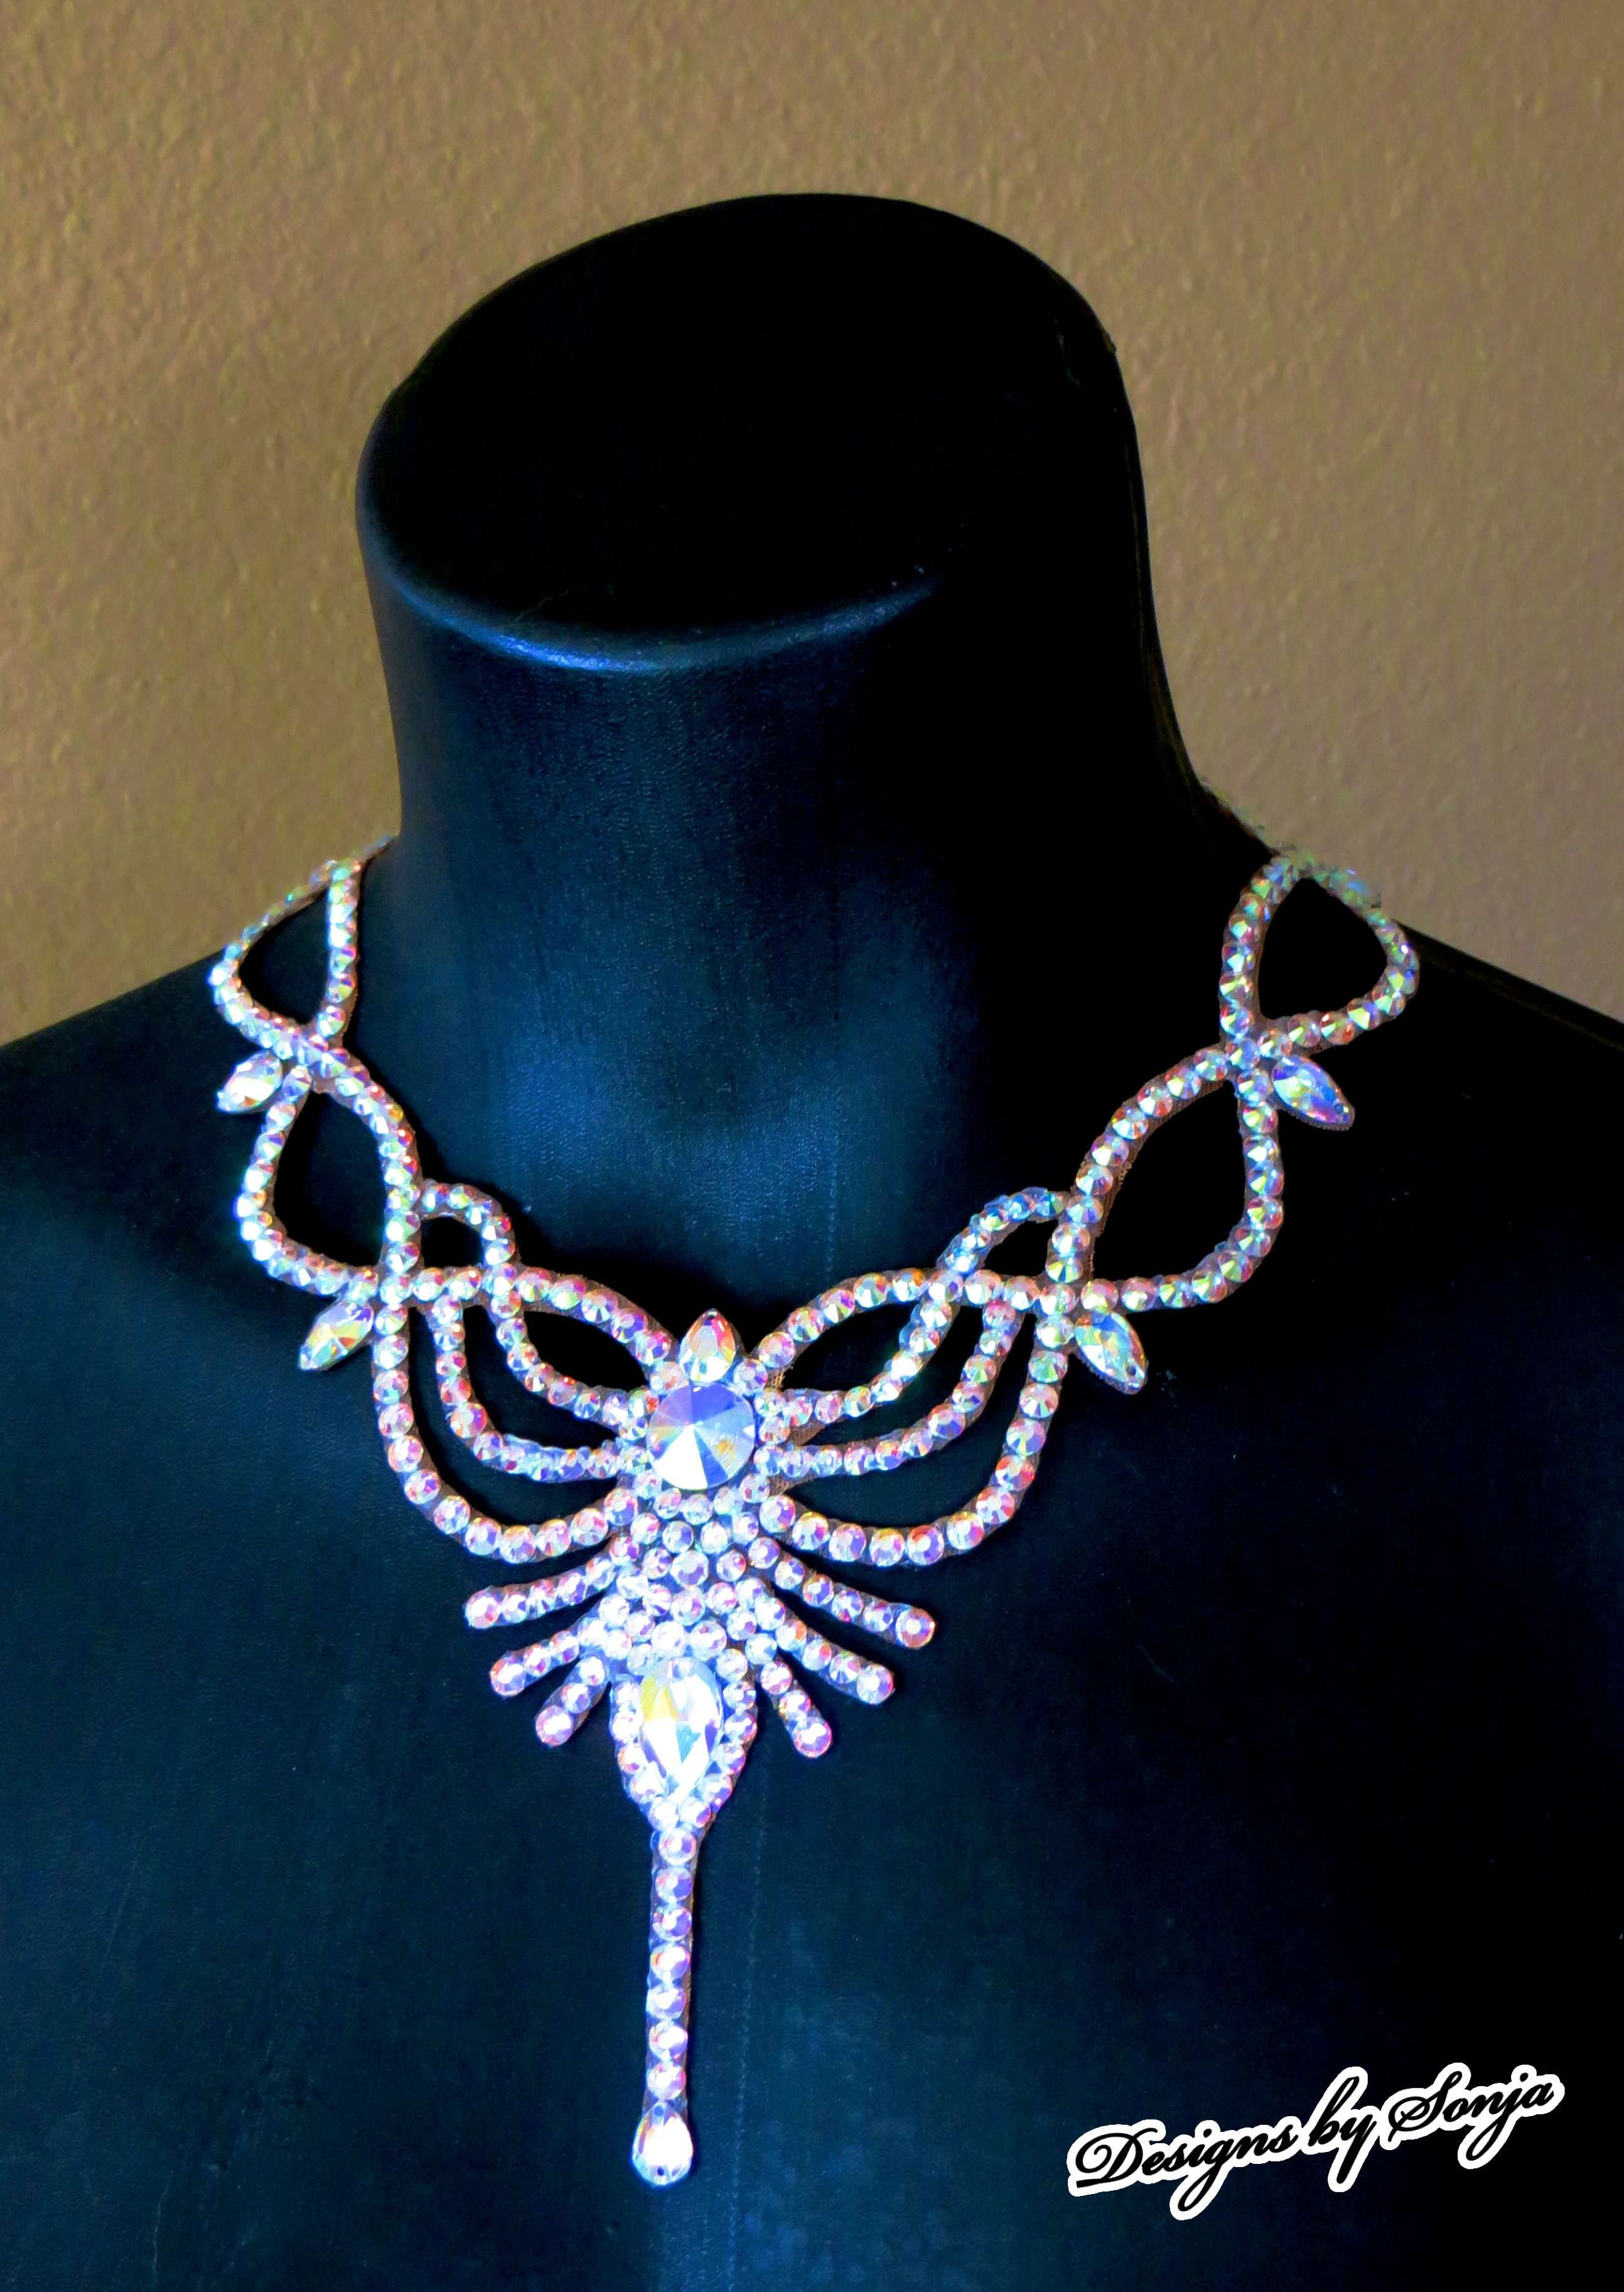 Ballroom jewelry dancesport necklace designed and created by Sonja